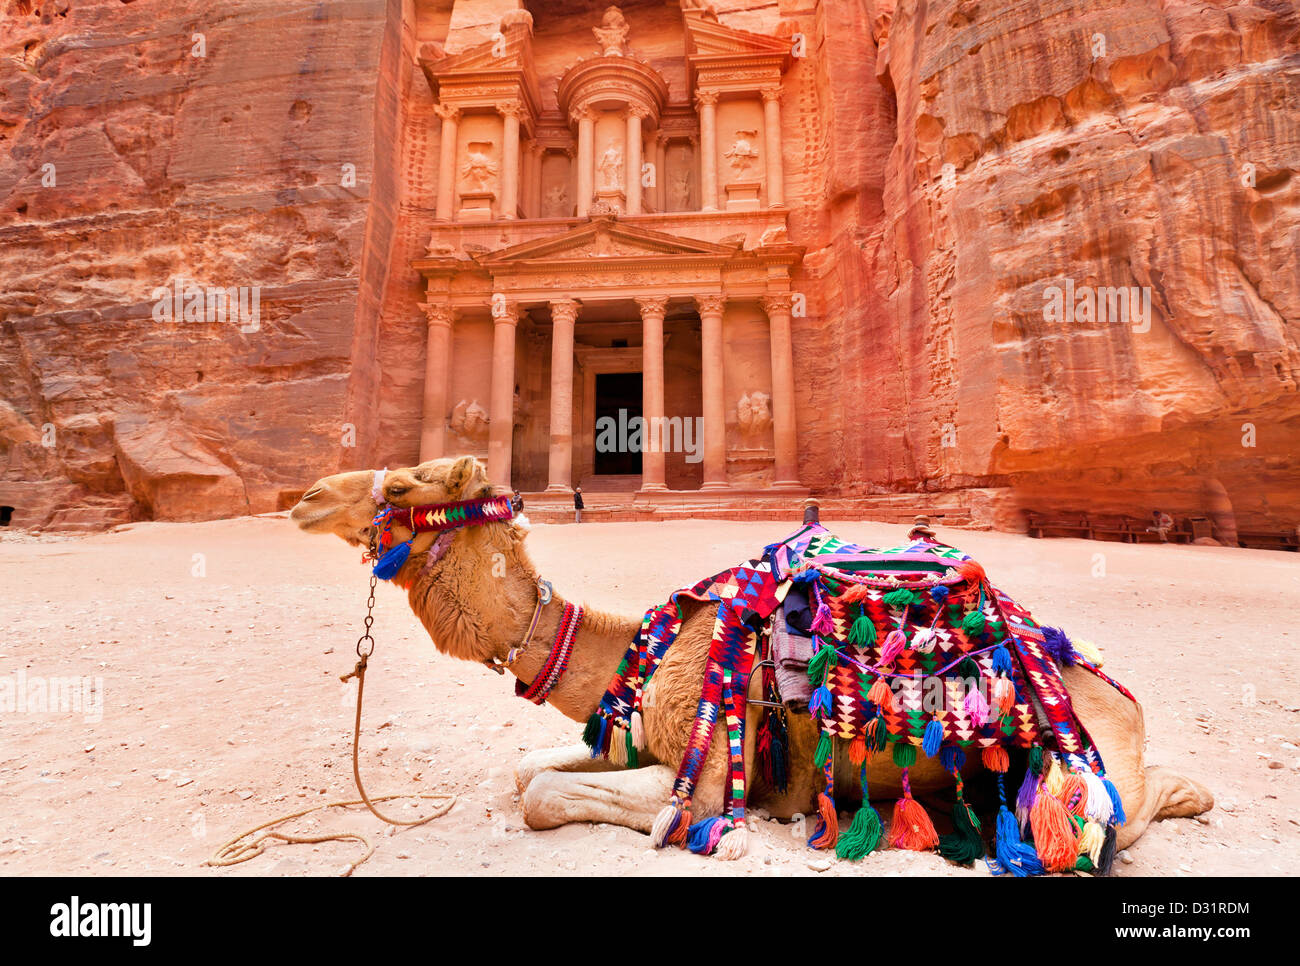 Bedouin camel rests near the treasury Al Khazneh carved into the rock at Petra, Jordan - Stock Image